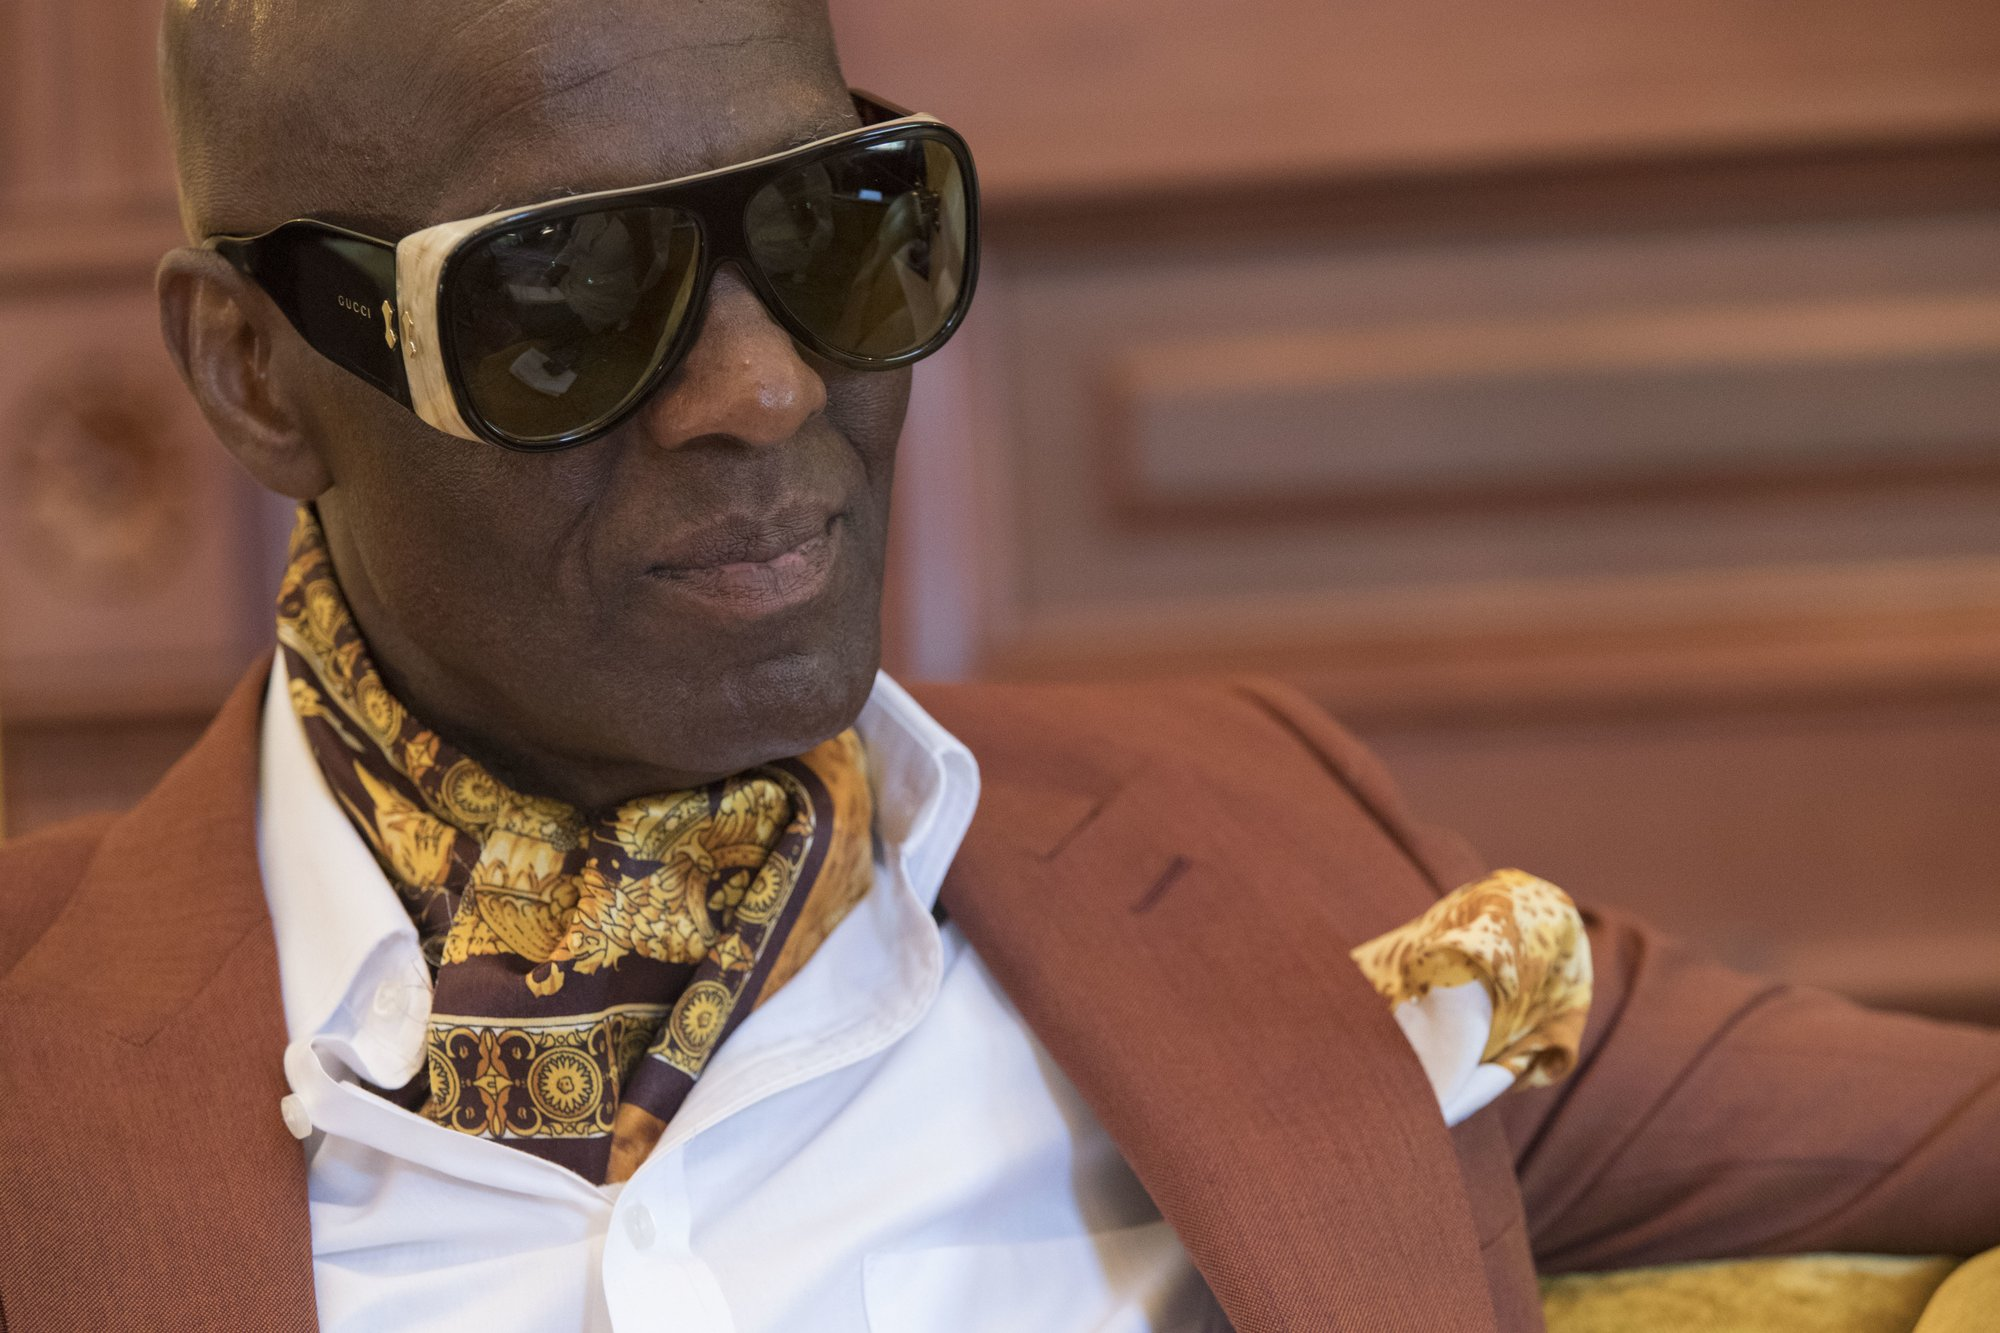 Harlem Designer Dapper Dan Updates People On His Meeting With Gucci Amidst The Blackface Scandal